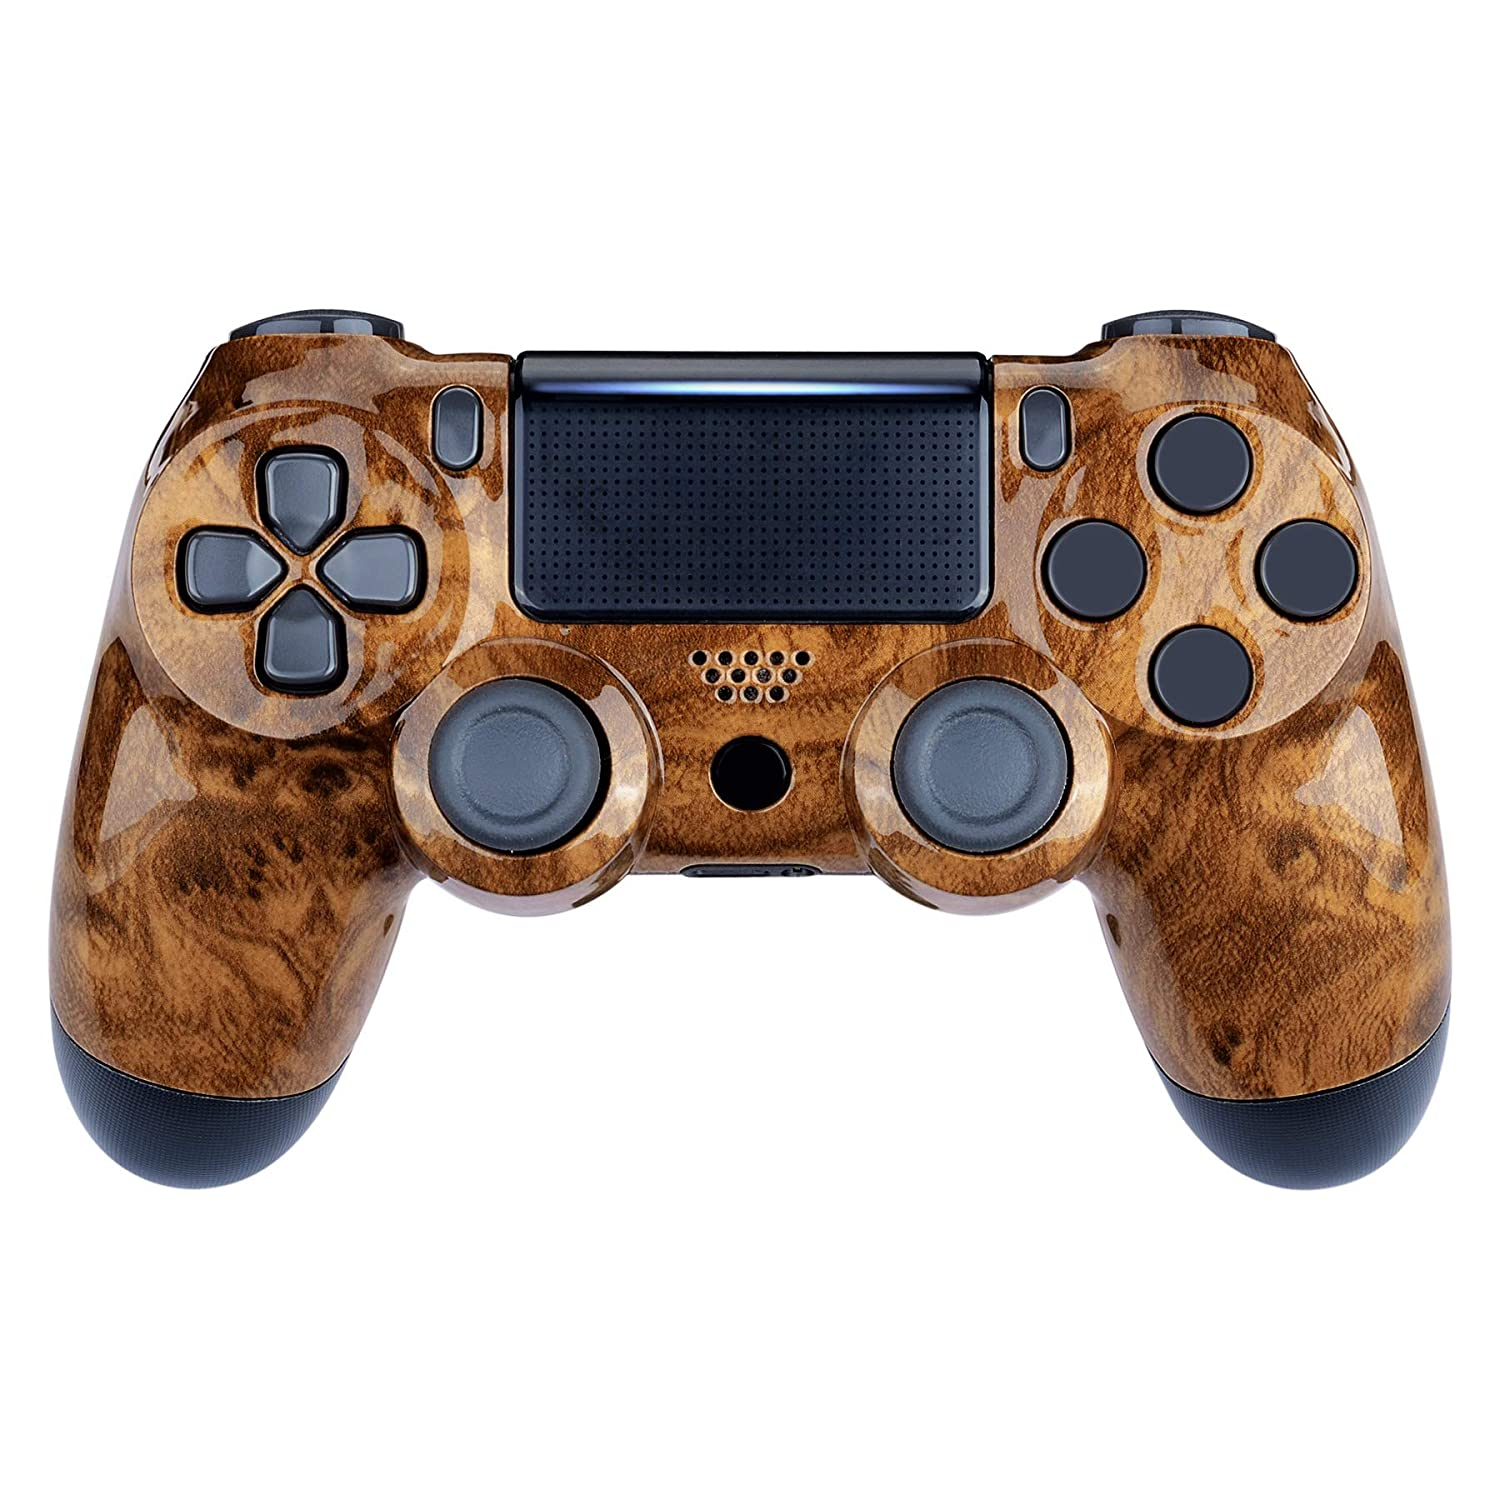 eXtremeRate Bird's Eye Wood Grain Front Housing Shell Faceplate Cover Replacement Kit for Playstation 4 PS4 Slim PS4 Pro Controller (CUH-ZCT2 JDM-040 JDM-050 JDM-055) - Controller NOT Included